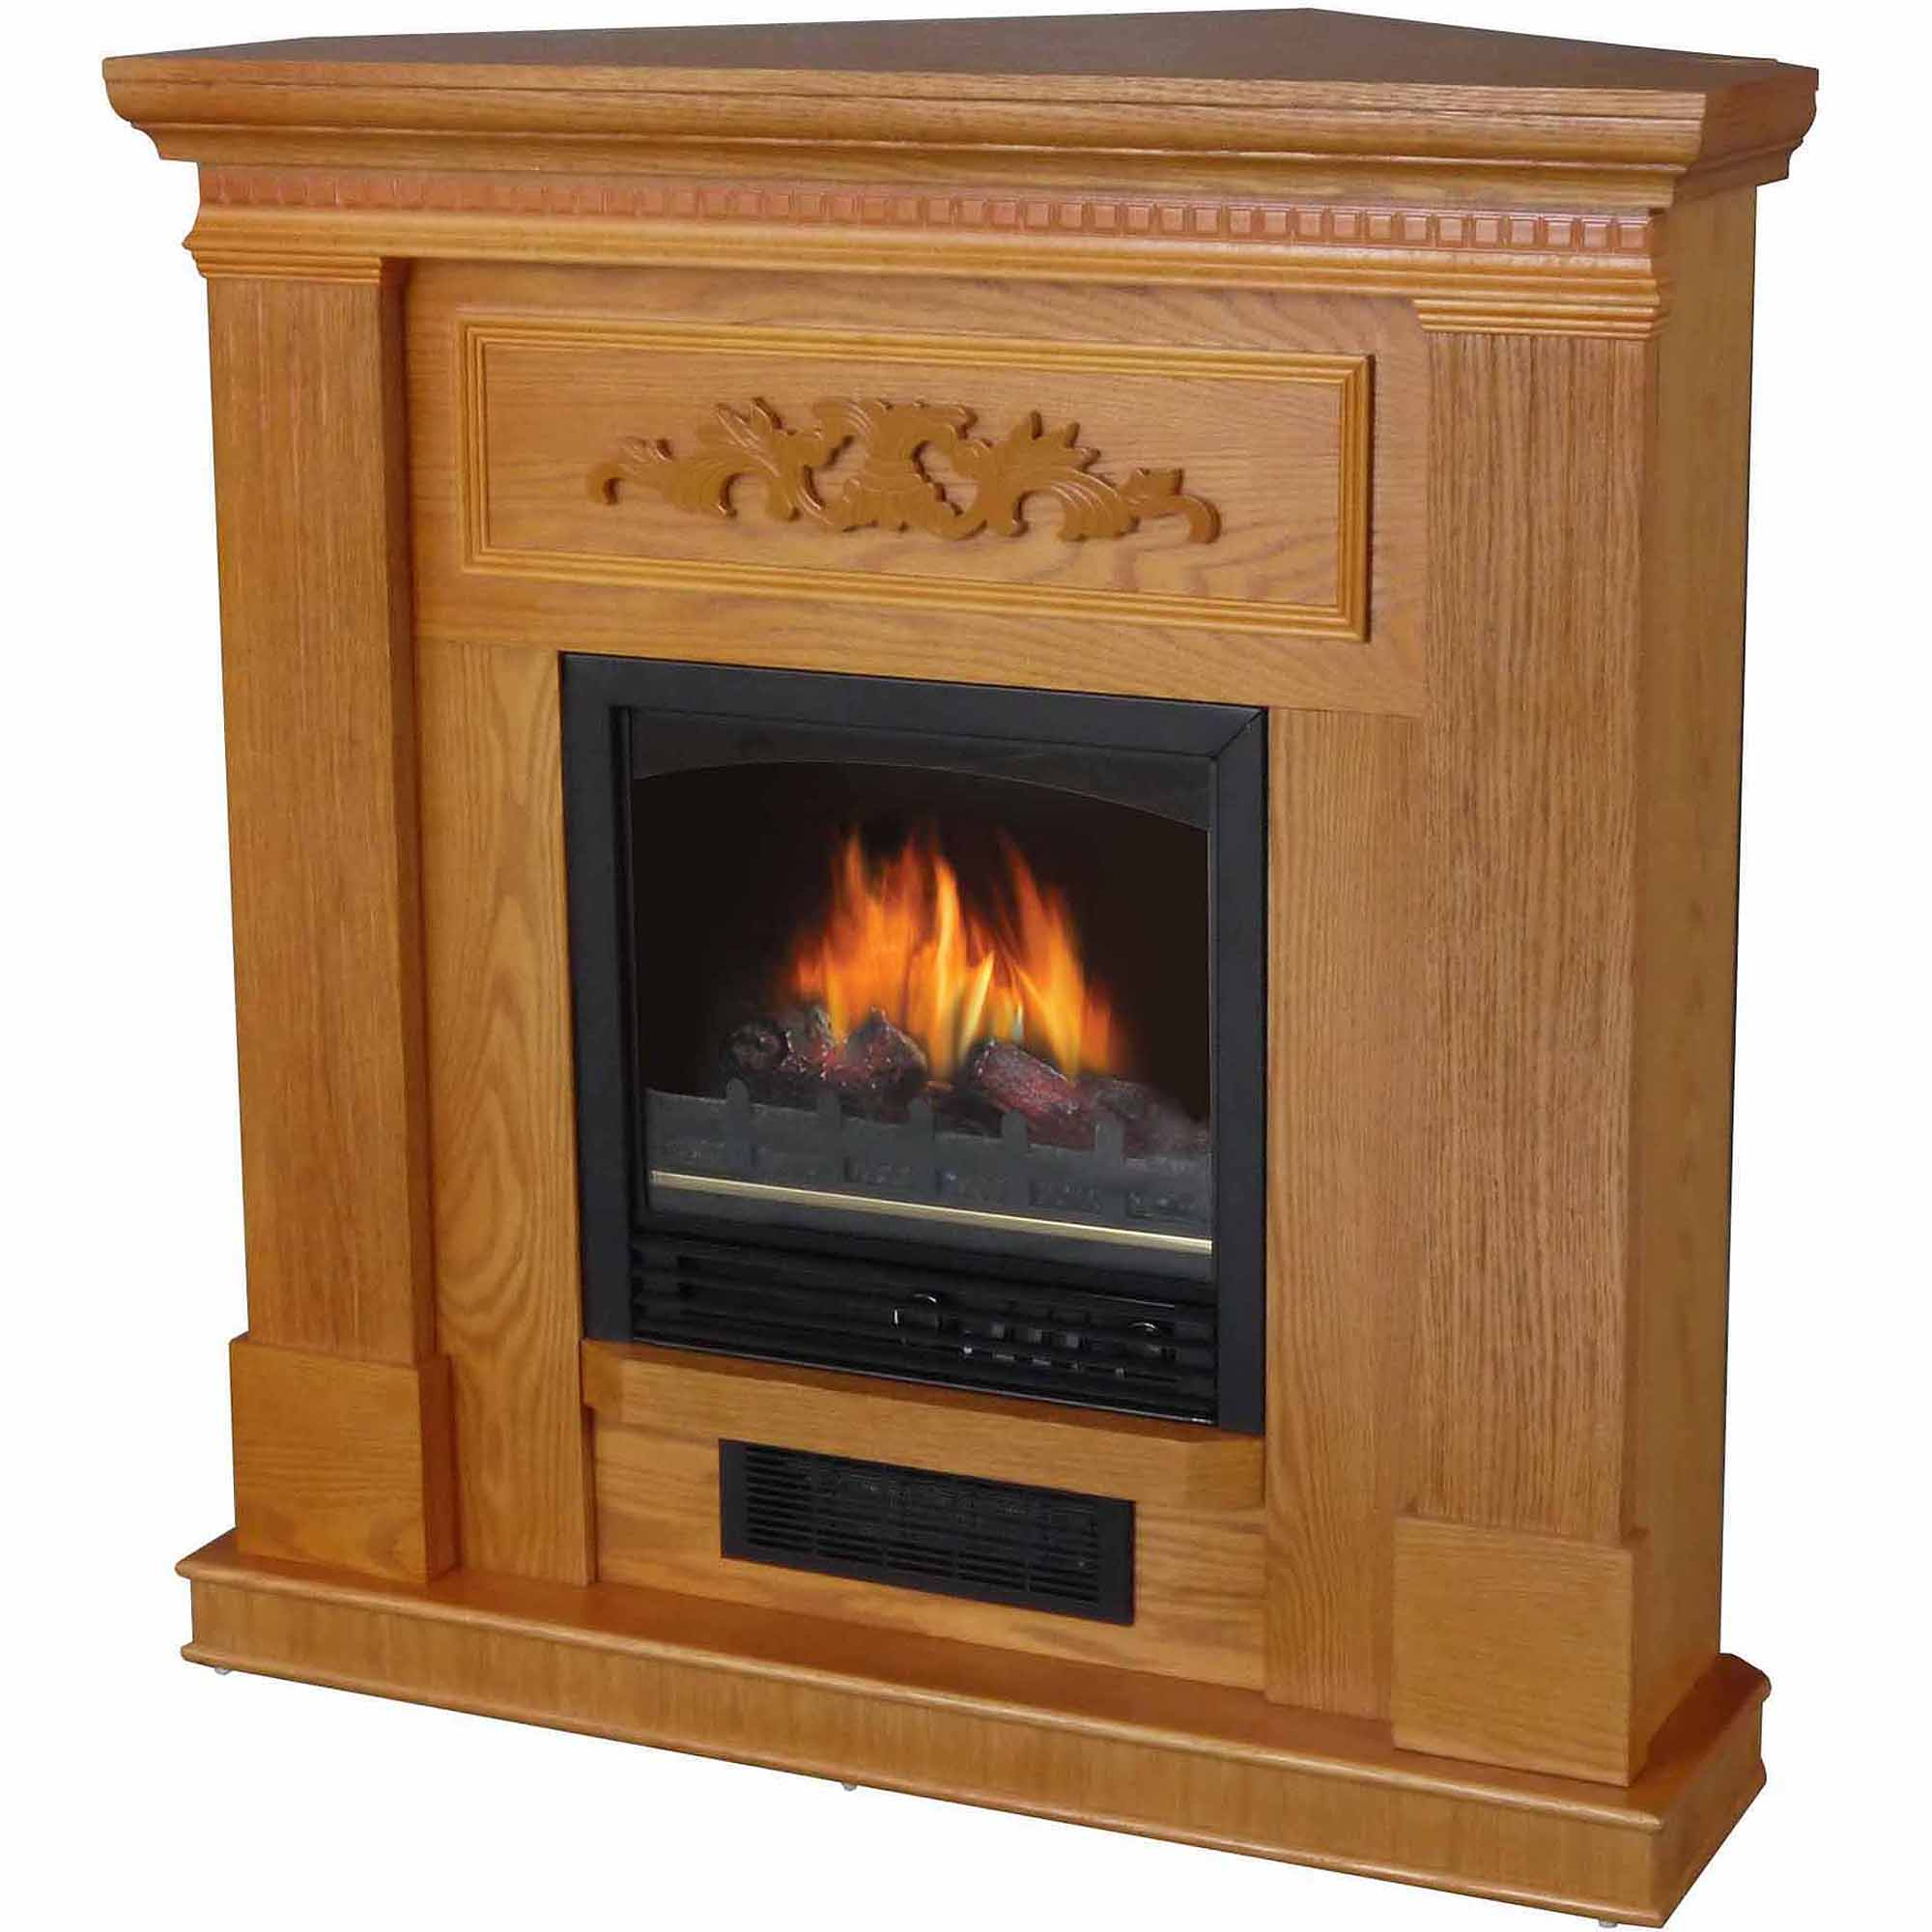 "Decor-Flame Electric Space Heater Fireplace with 38"" Mantle, Oak"